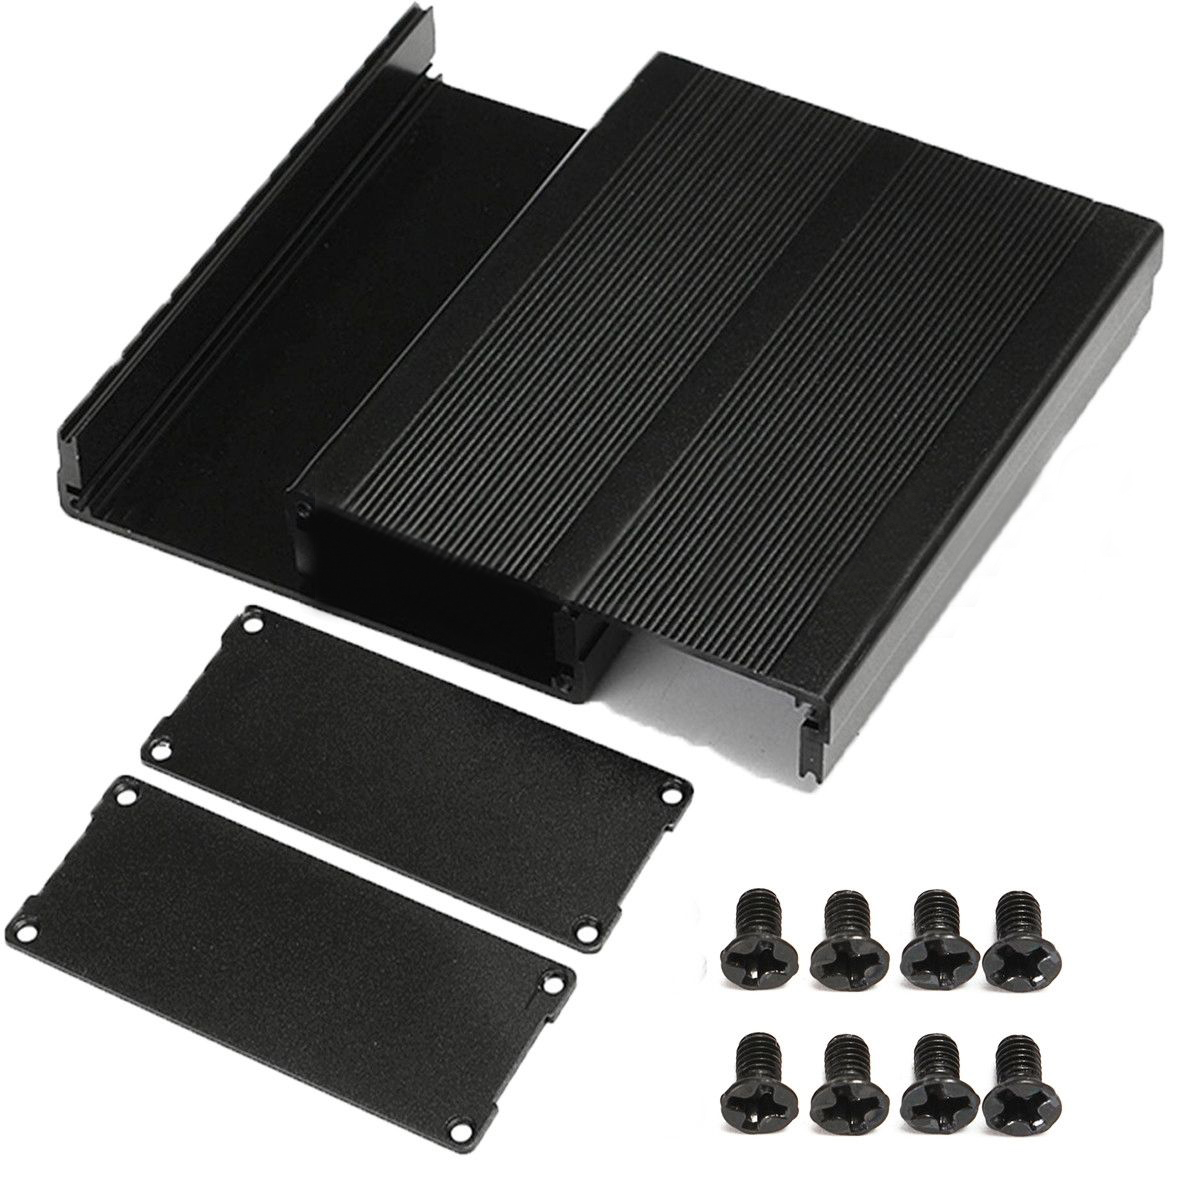 Split Body Aluminum Box Enclosure Instrument Case Panels Screws DIY Built-in Grooves Mayitr Electronic Project Cases 120*97*40mm набор для вышивания с бисером riolis богоматерь казанская